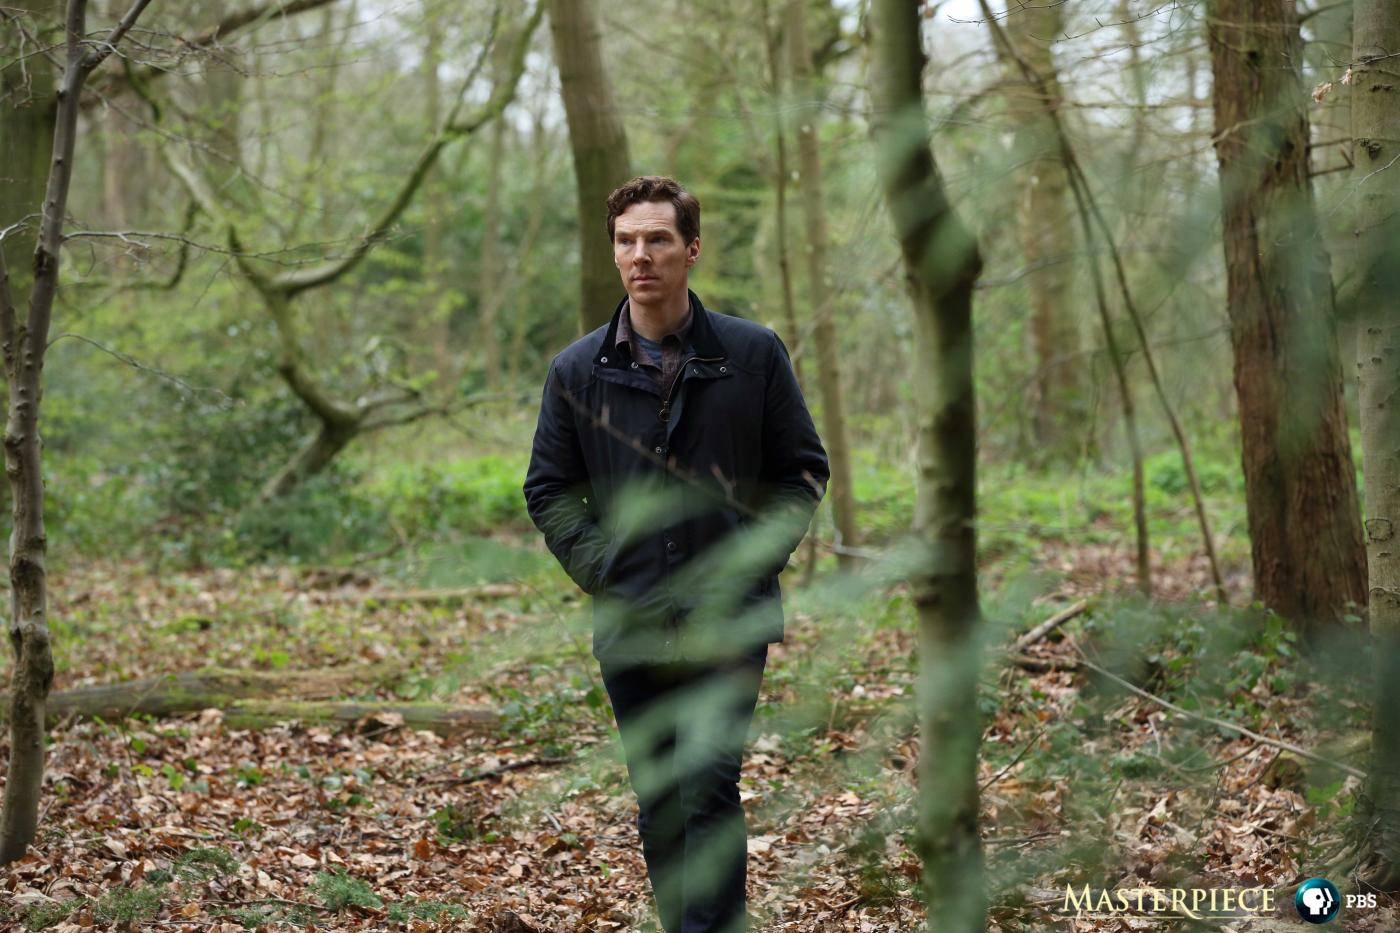 Benedict Cumberbatch in Masterpiece's upcoming 'The Child in Time.' Photo: Pinewood Television, SunnyMarch TV and MASTERPIECE